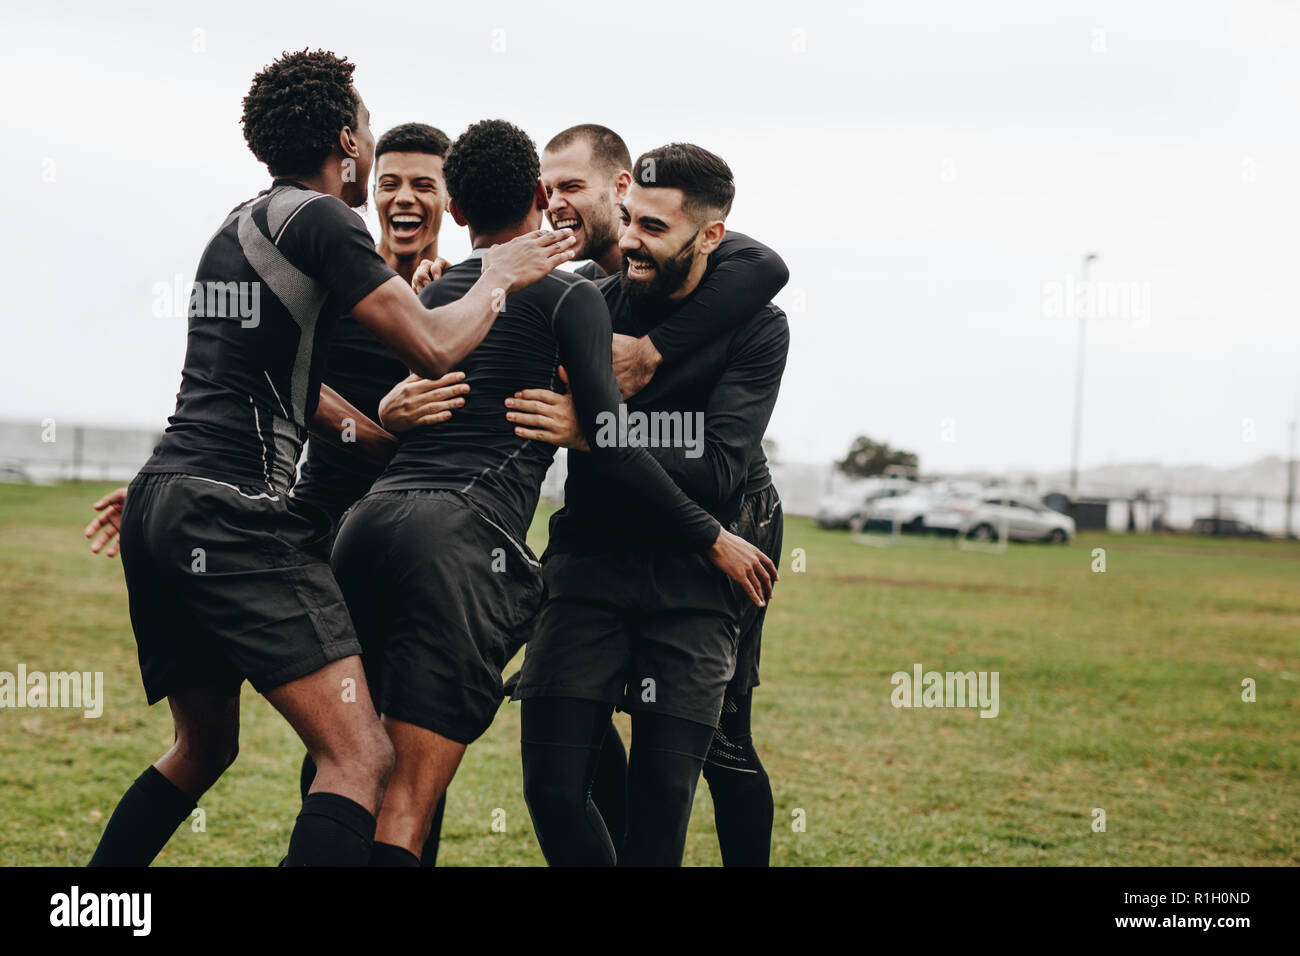 Group of football players excited on scoring a goal. Footballers coming together in a huddle celebrating victory on the field. - Stock Image